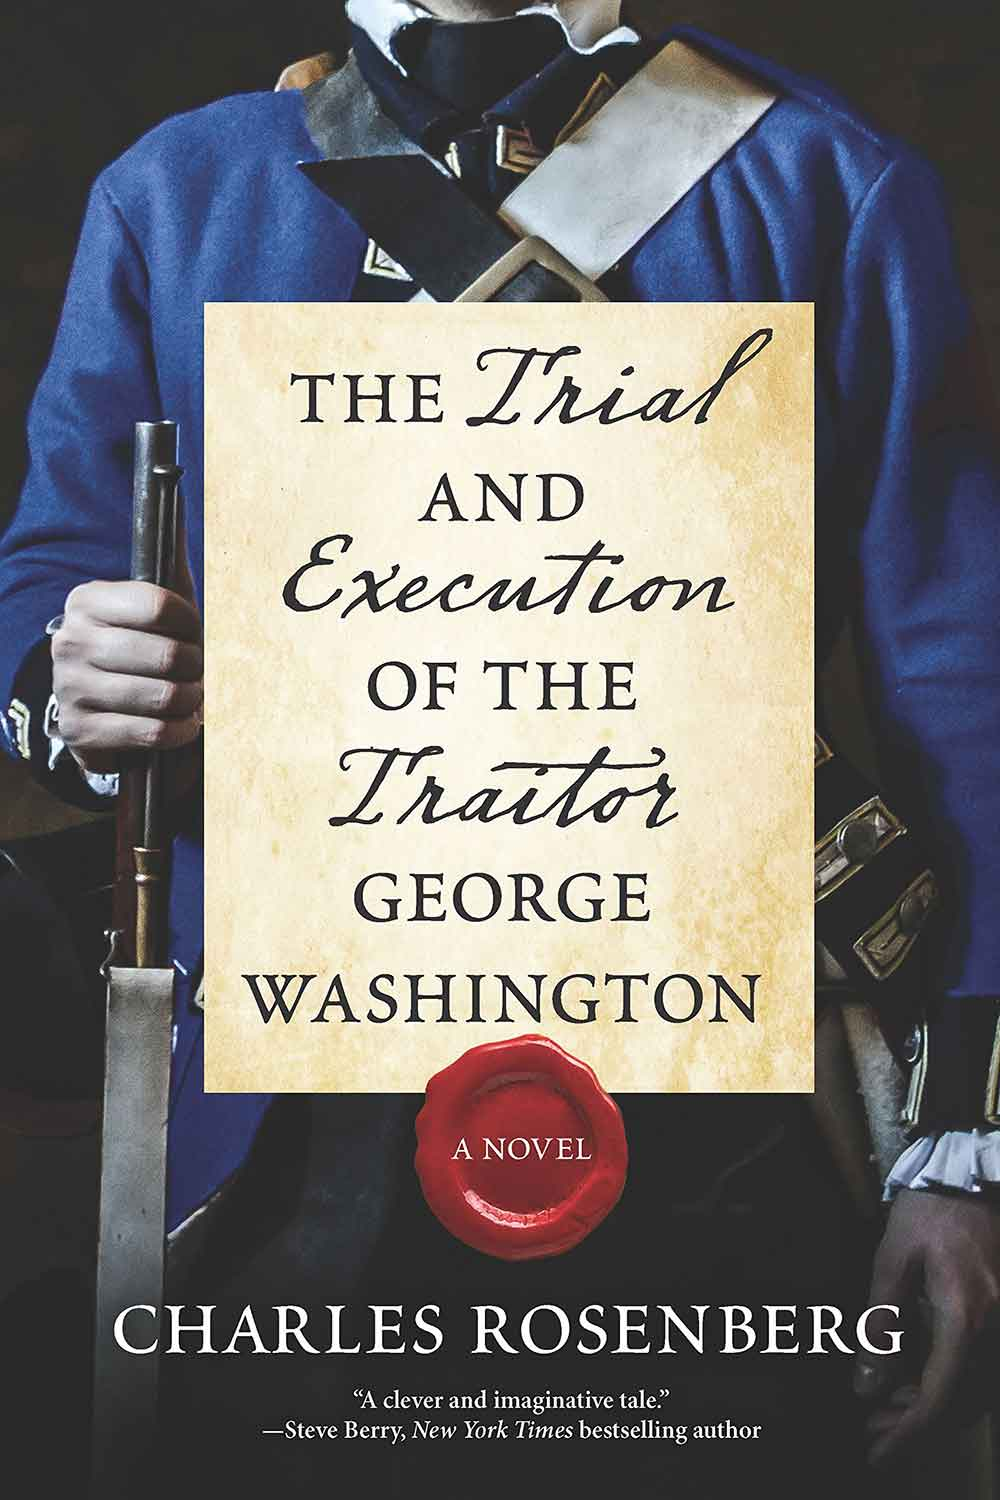 08-The-Trial-and-Execution-of-the-Traitor-George-Washington